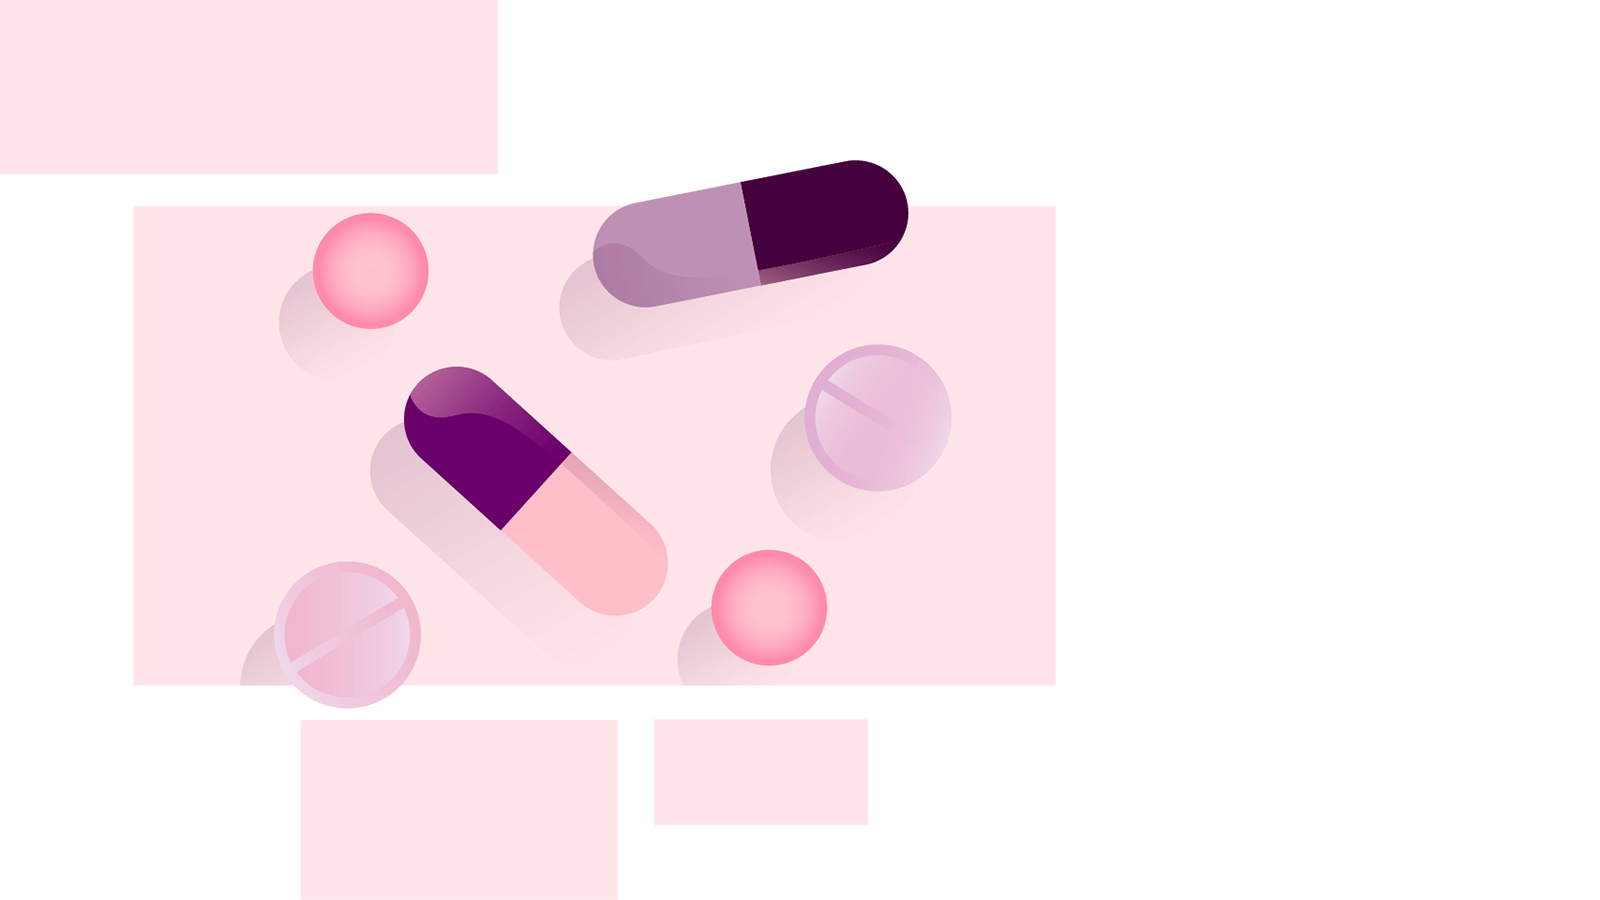 Illustration of a range of medication